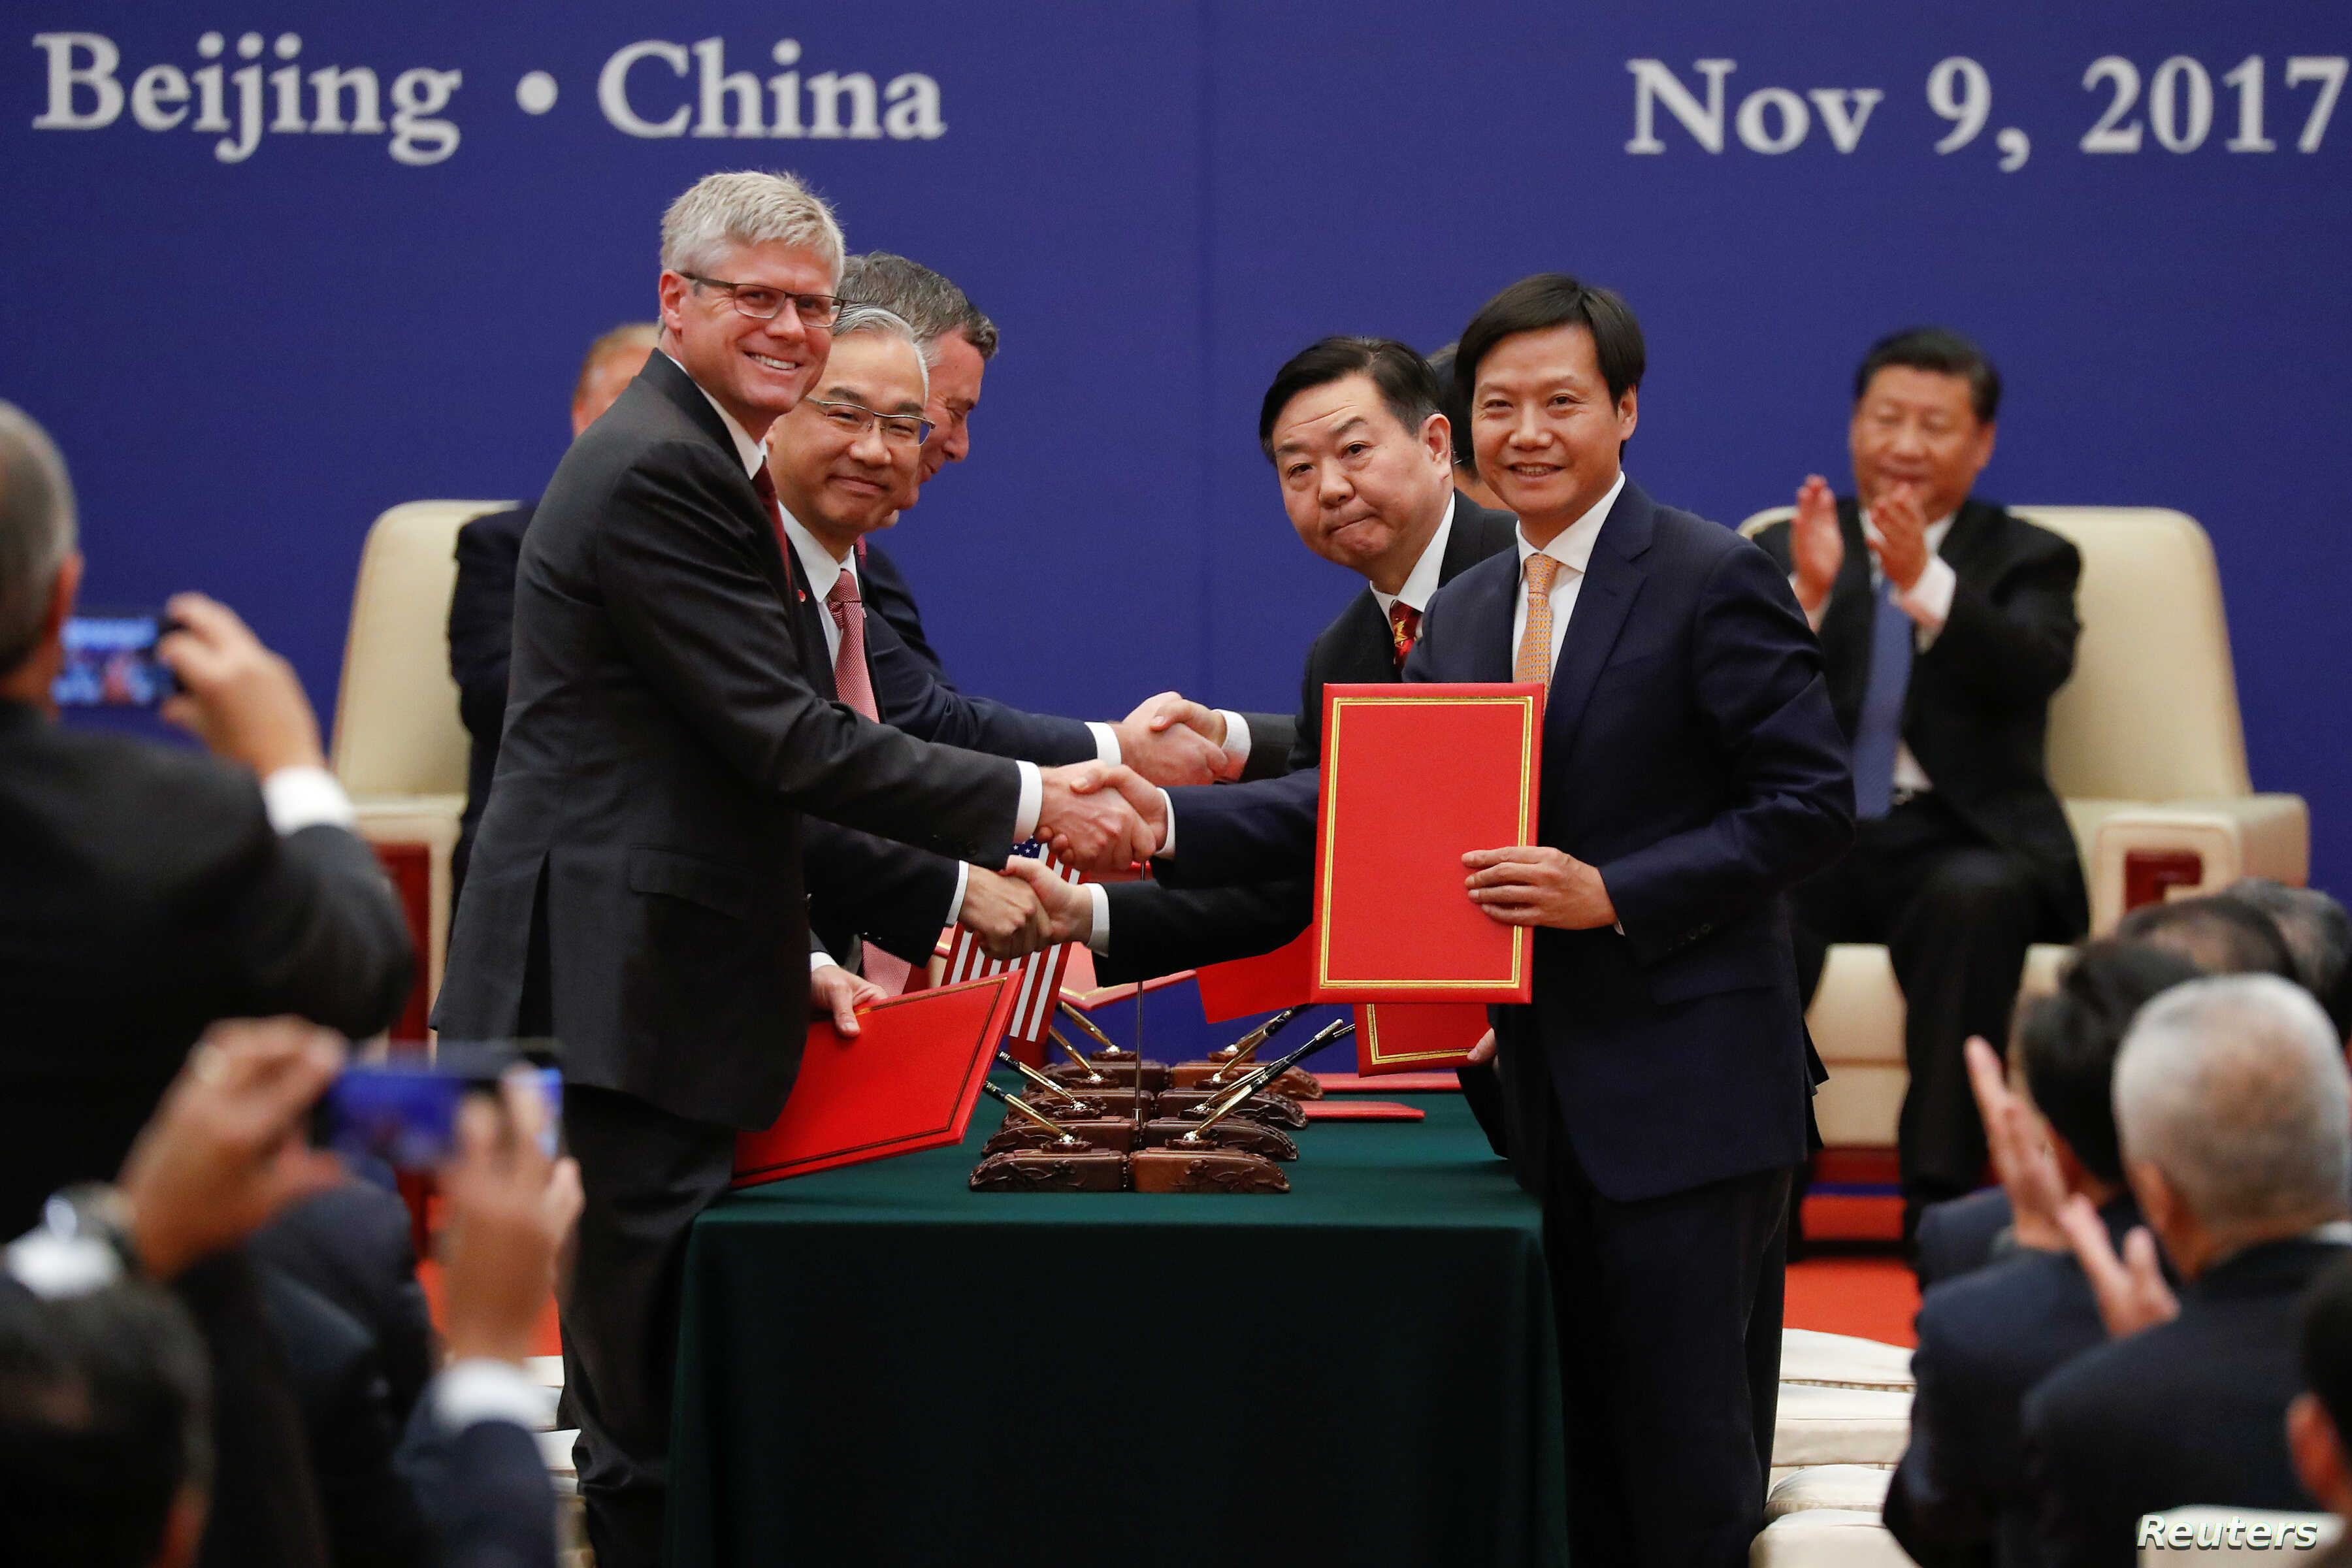 Business leaders shake hands during signing ceremony attended by U.S. President Donald Trump and China's President Xi Jinping at the Great Hall of the People in Beijing, Nov. 9, 2017.